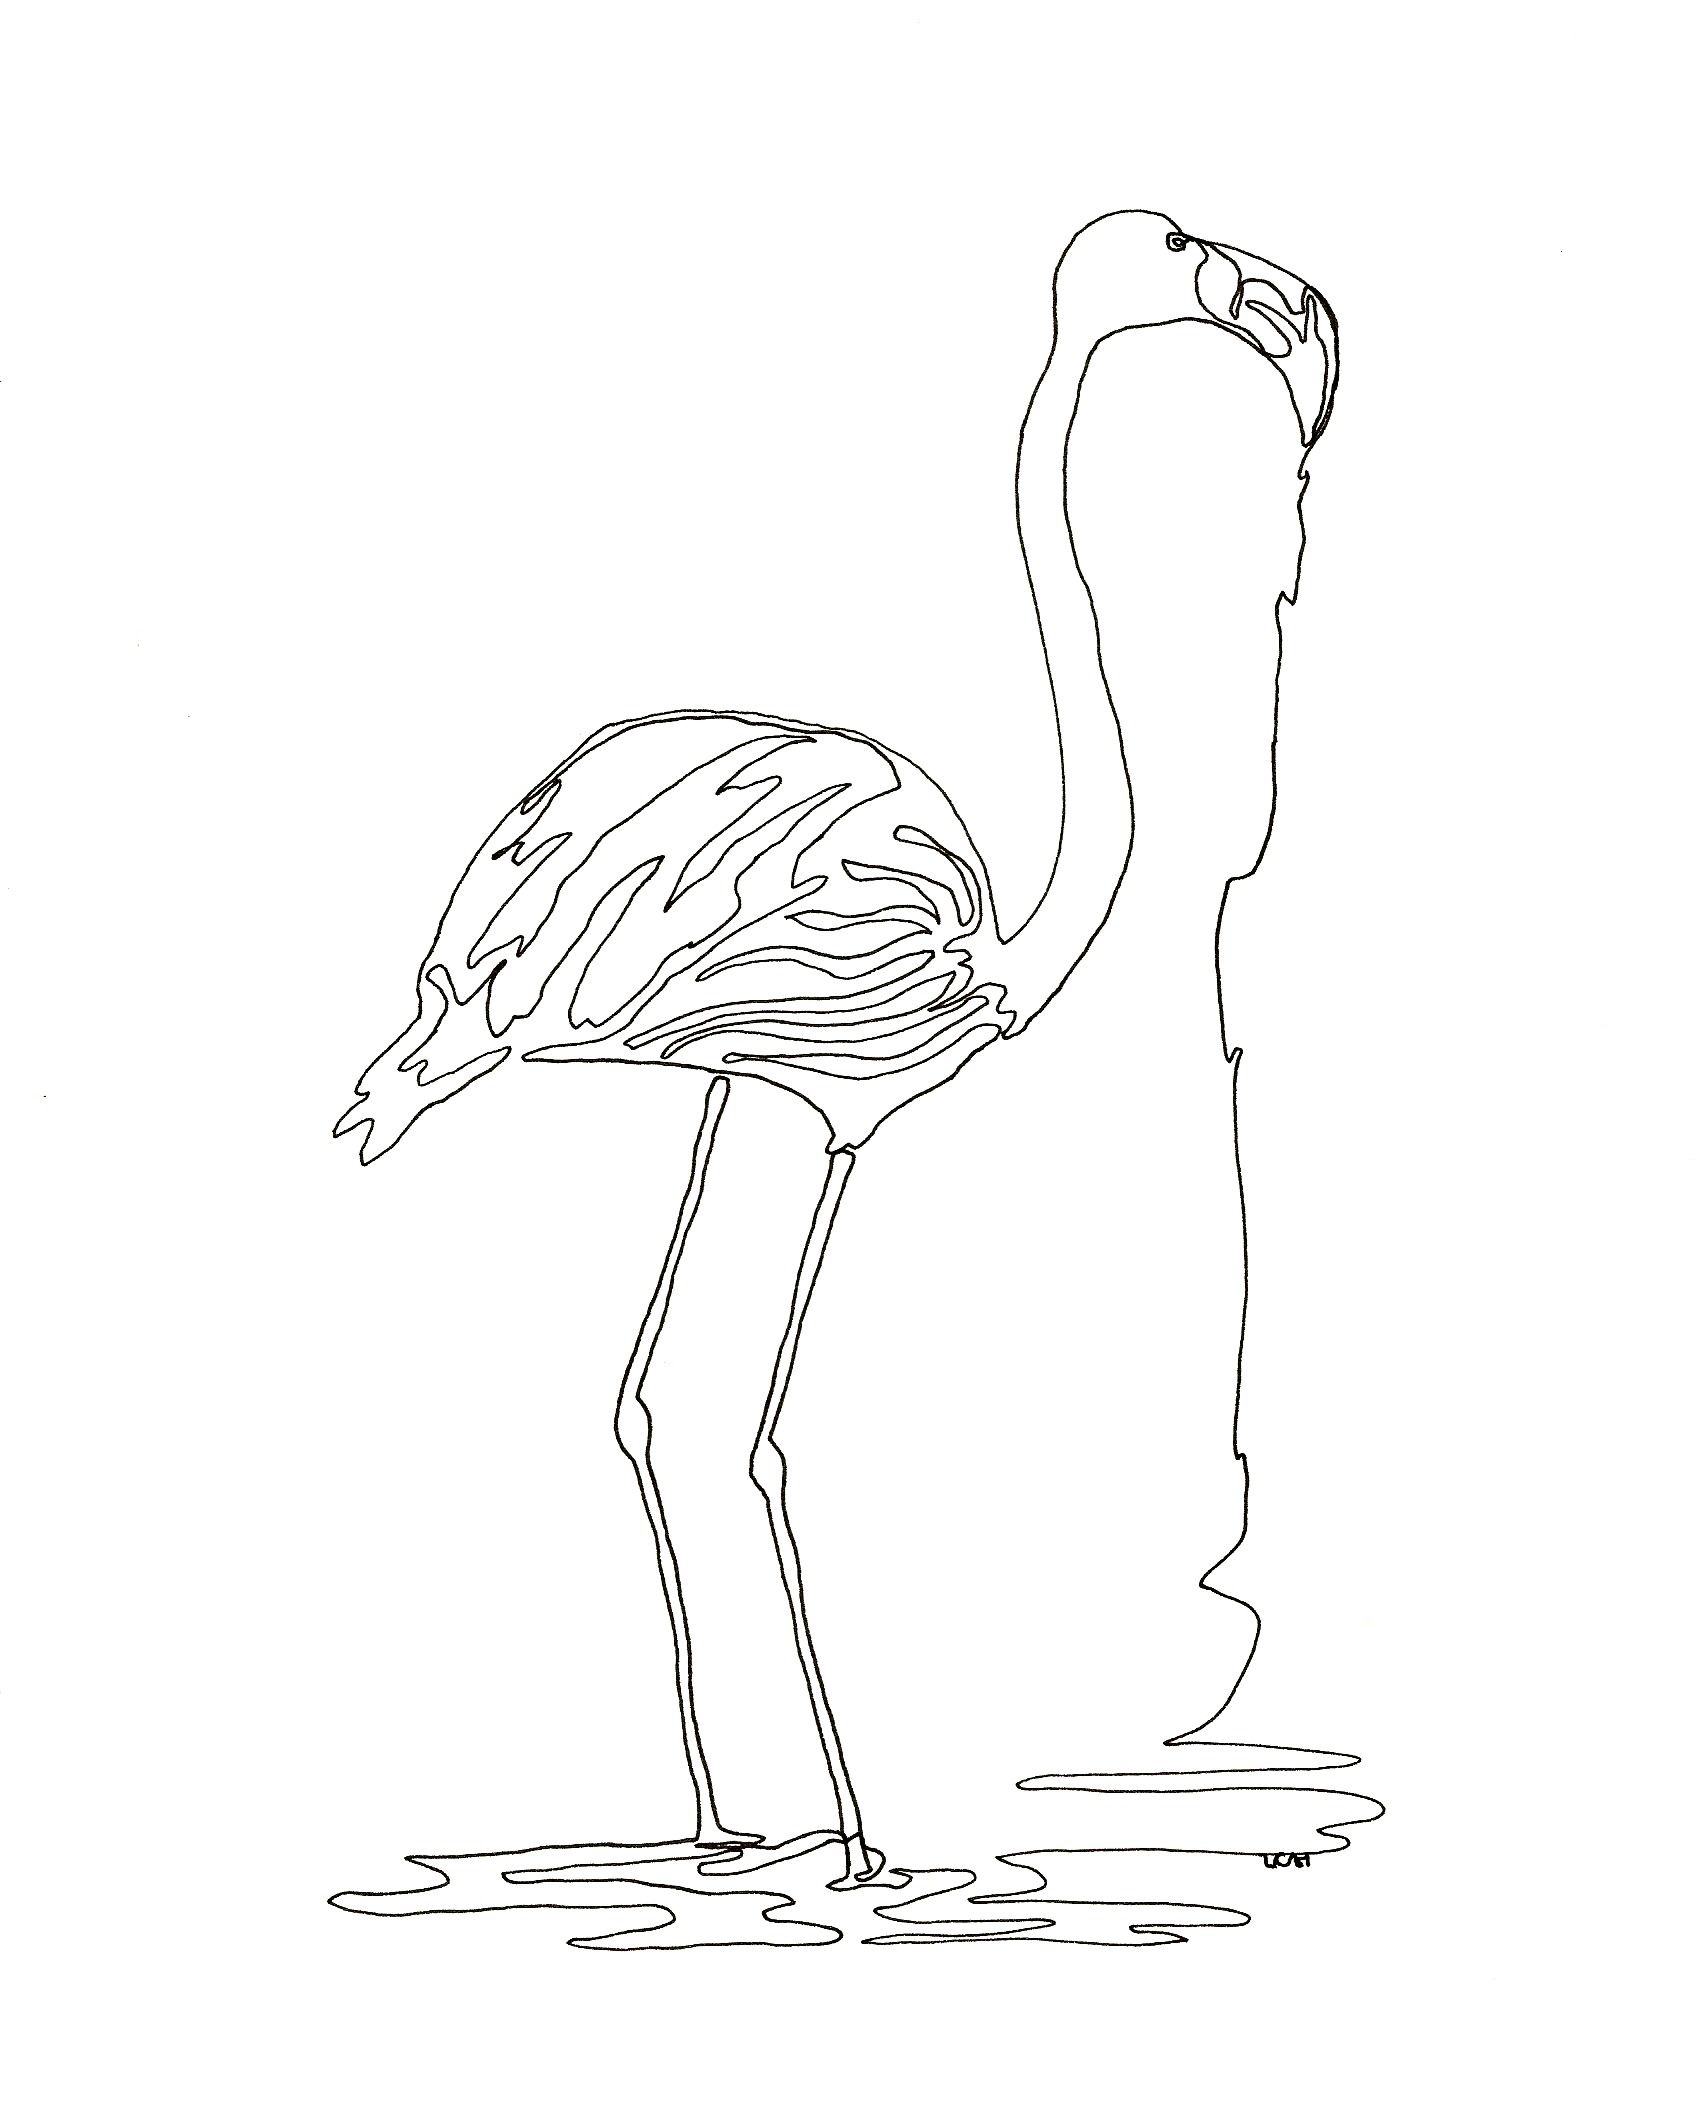 Flamingo Continuous Line Drawing